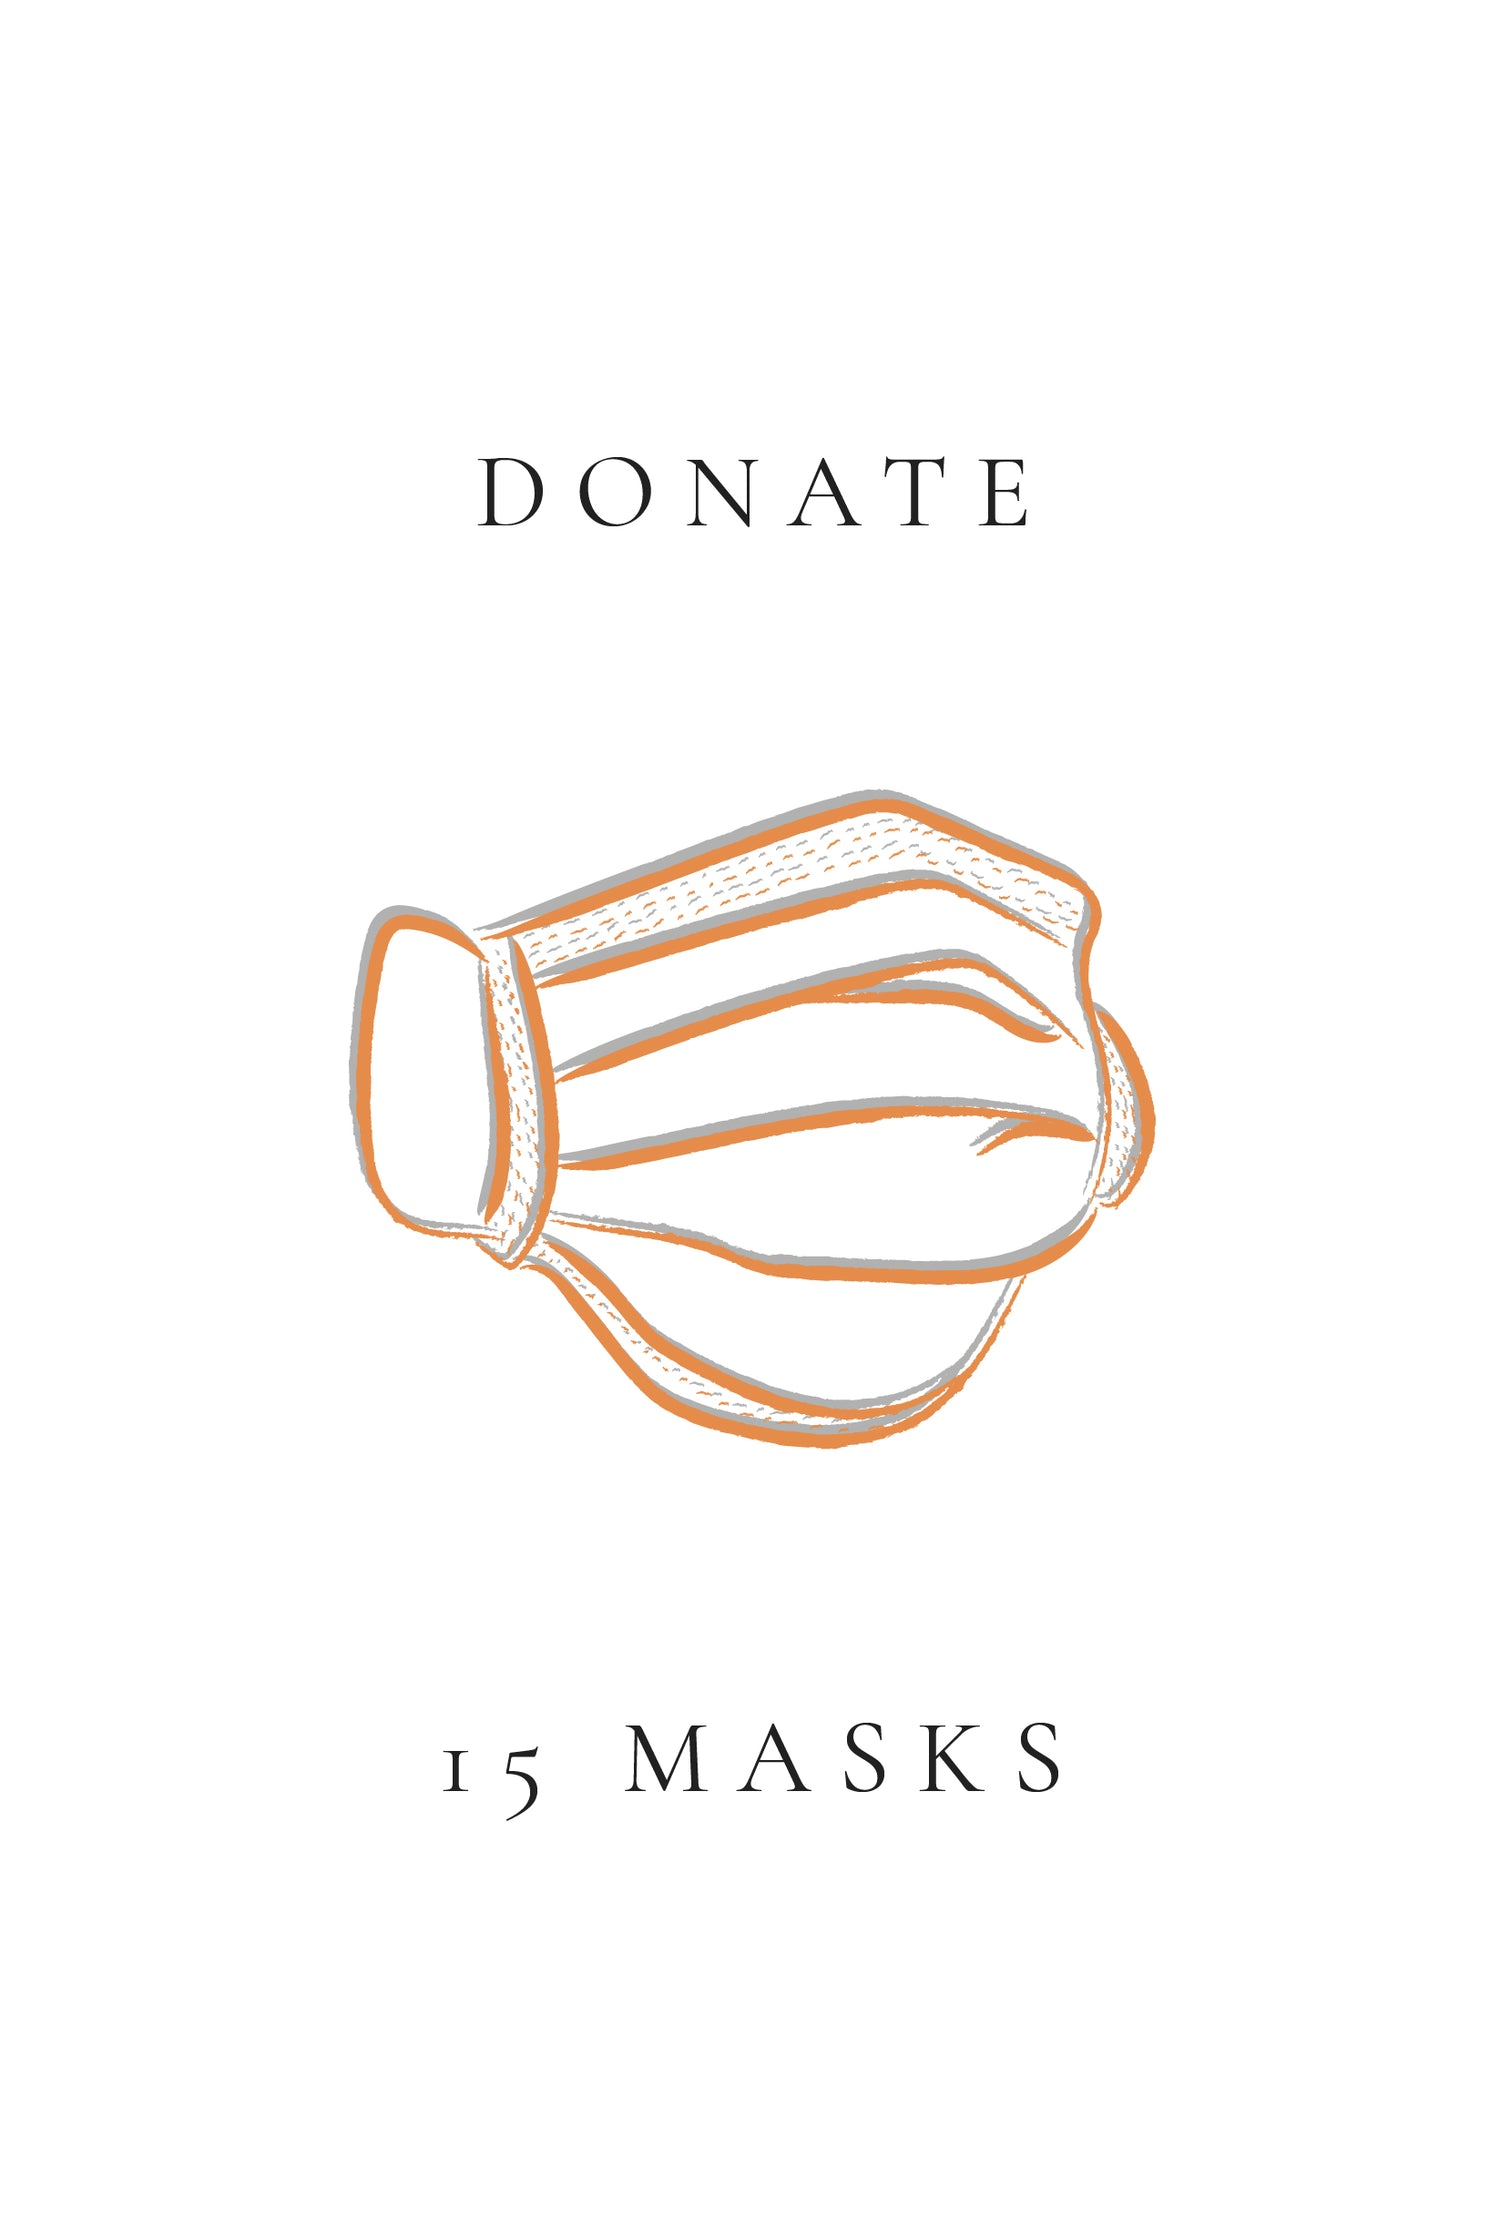 15 Face Mask Donation